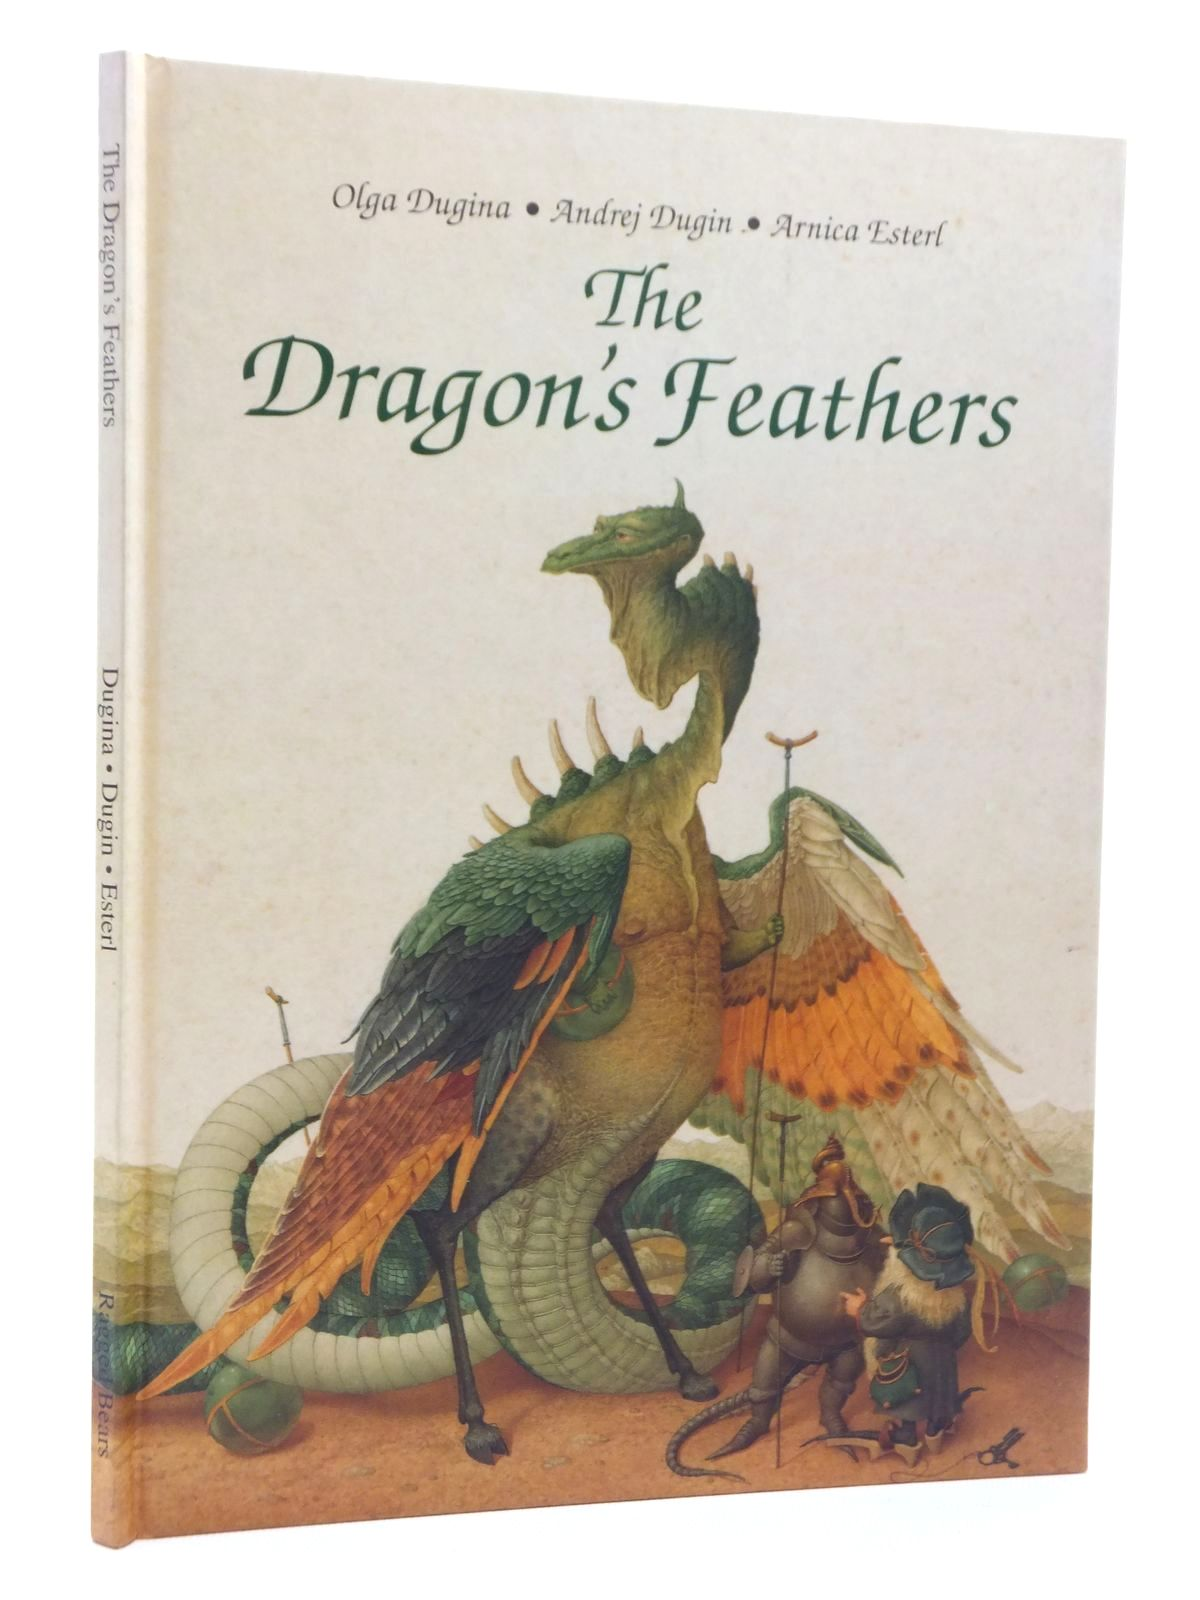 Photo of THE DRAGON'S FEATHERS written by Esterl, Arnica<br />Crampton, Patricia illustrated by Dugin, Andrej<br />Dugina, Olga published by Ragged Bears Limited (STOCK CODE: 1317035)  for sale by Stella & Rose's Books